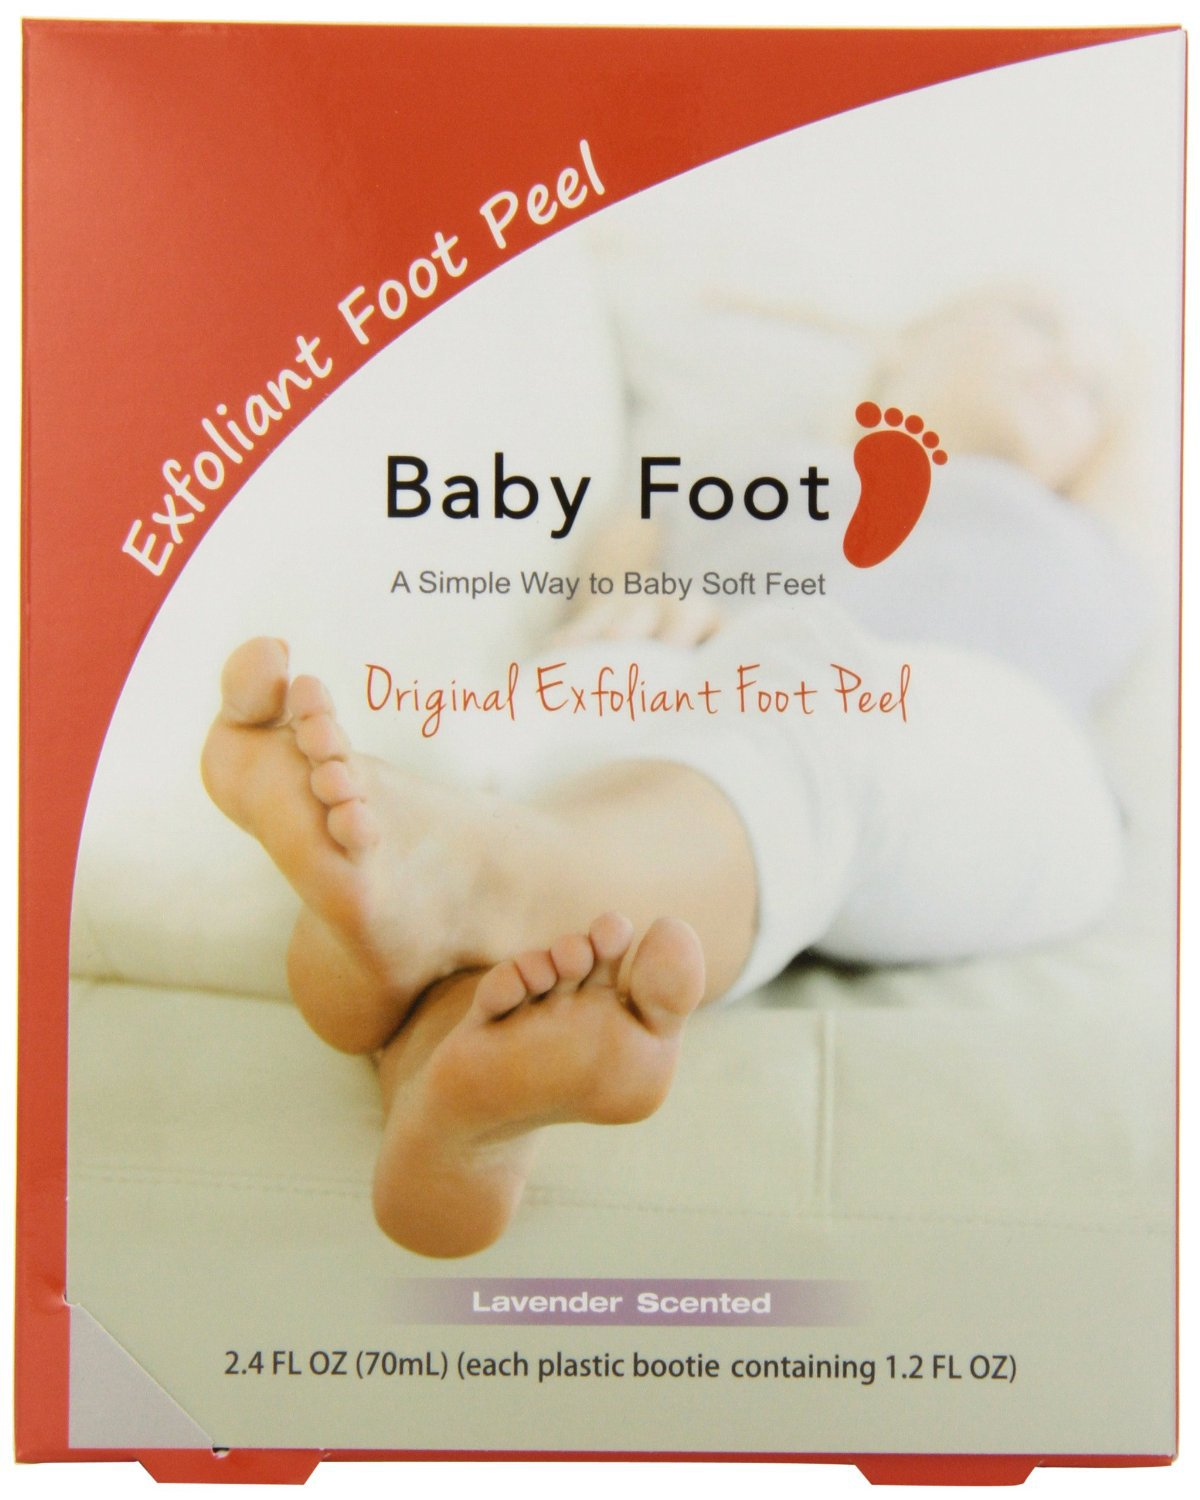 baby foot deep skin exfoliation for feet reviews in foot